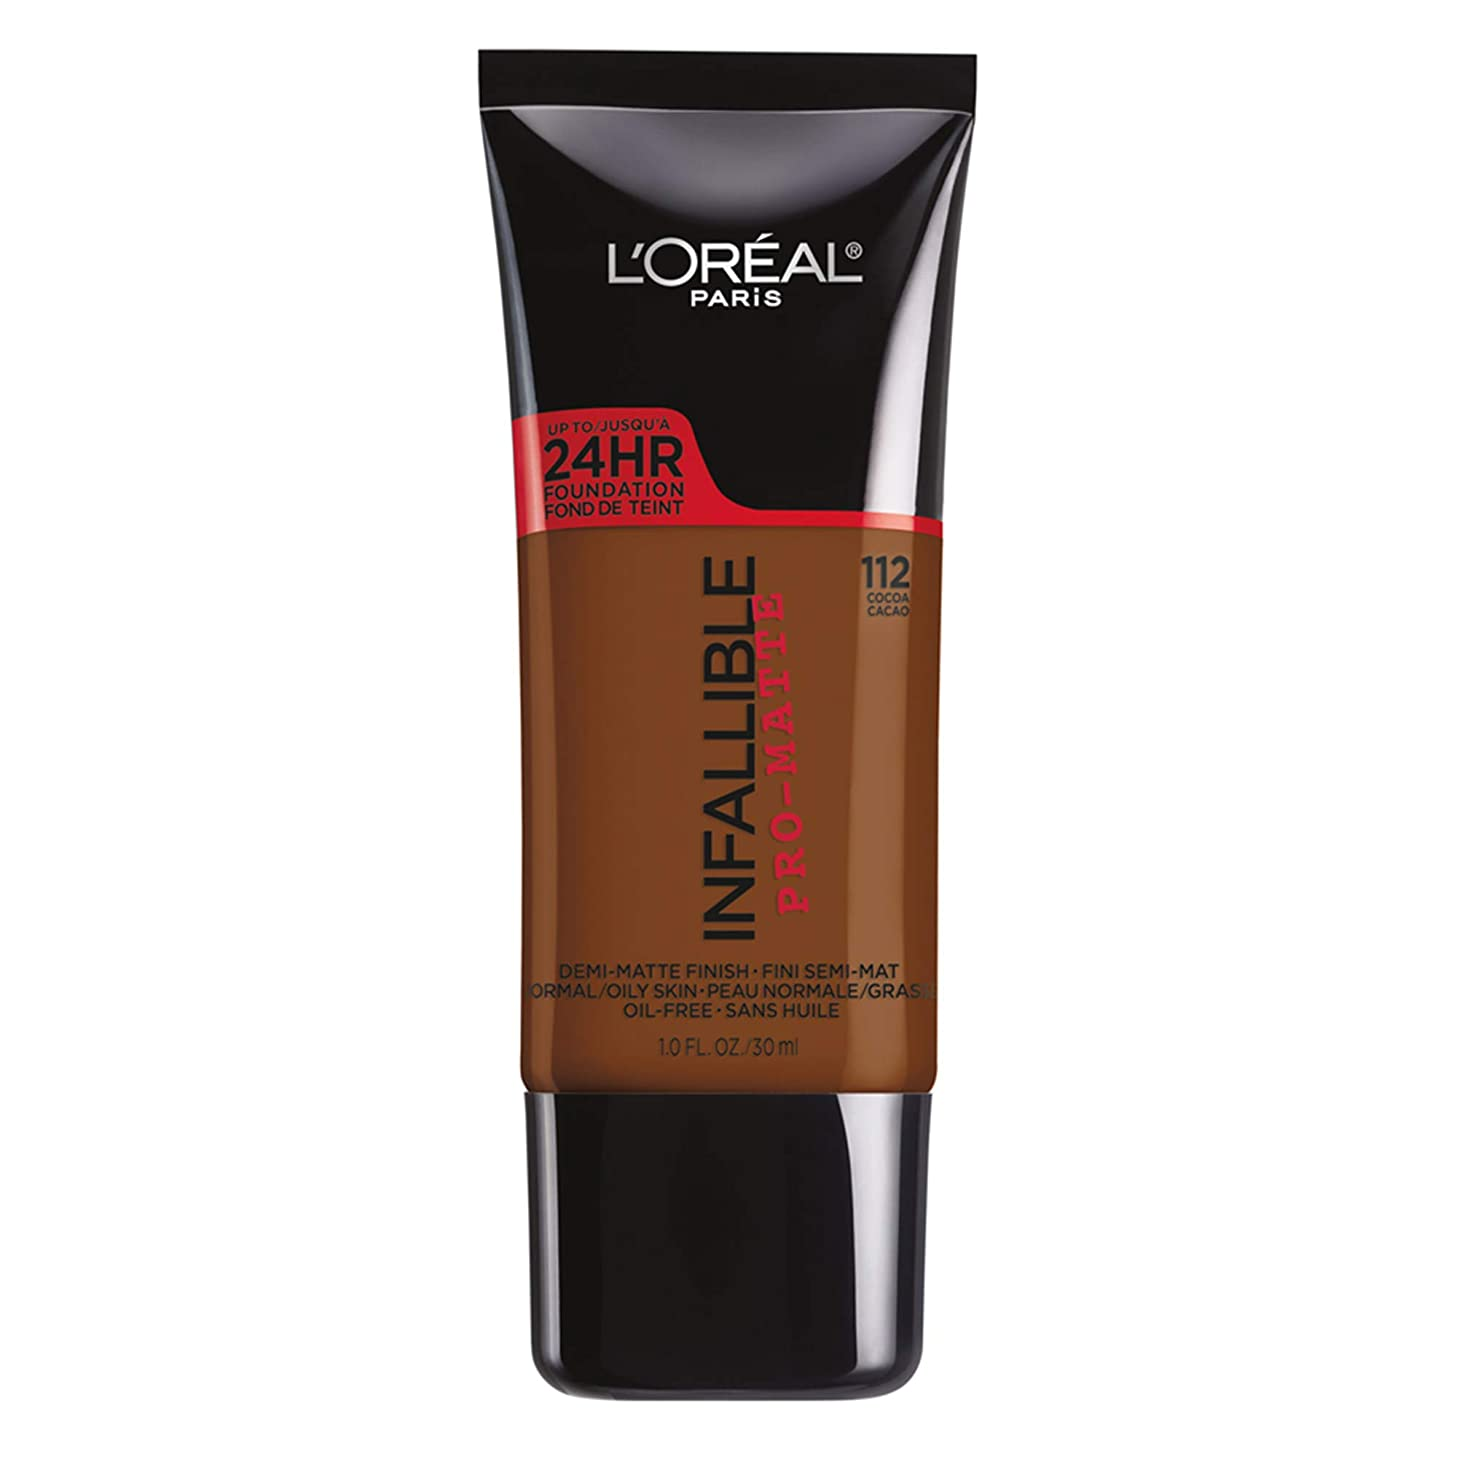 ポスト印象派ミルク虫L'Oreal Paris Infallible Pro-Matte Foundation Makeup, 112 Cocoa, 1 fl. oz[並行輸入品]